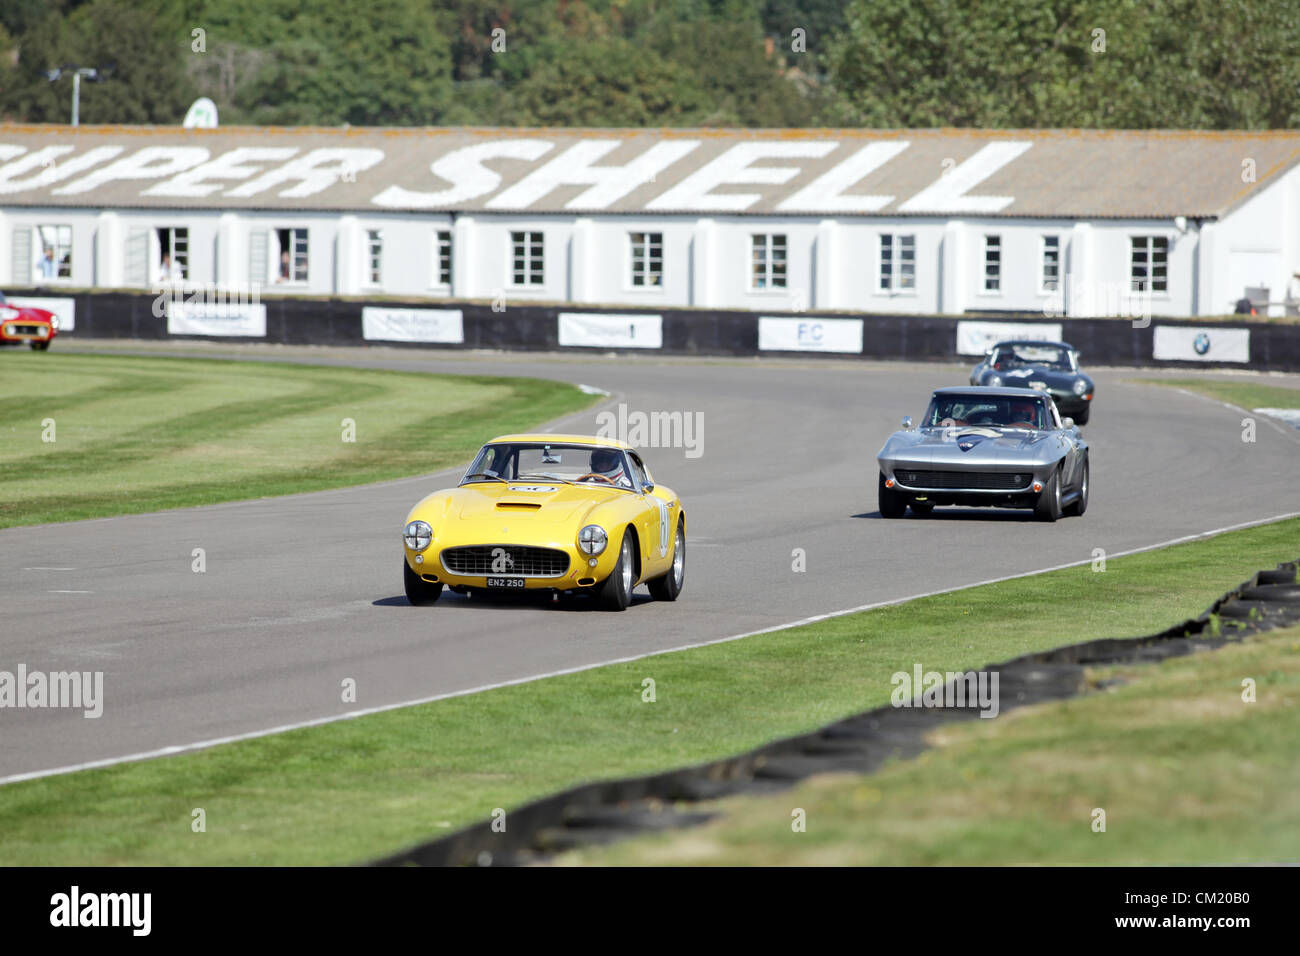 Goodwood Estate, Chichester, UK. 15th September 2012. Christian Horner (Red Bull F1 Team Principle) driving a 1960 - Stock Image